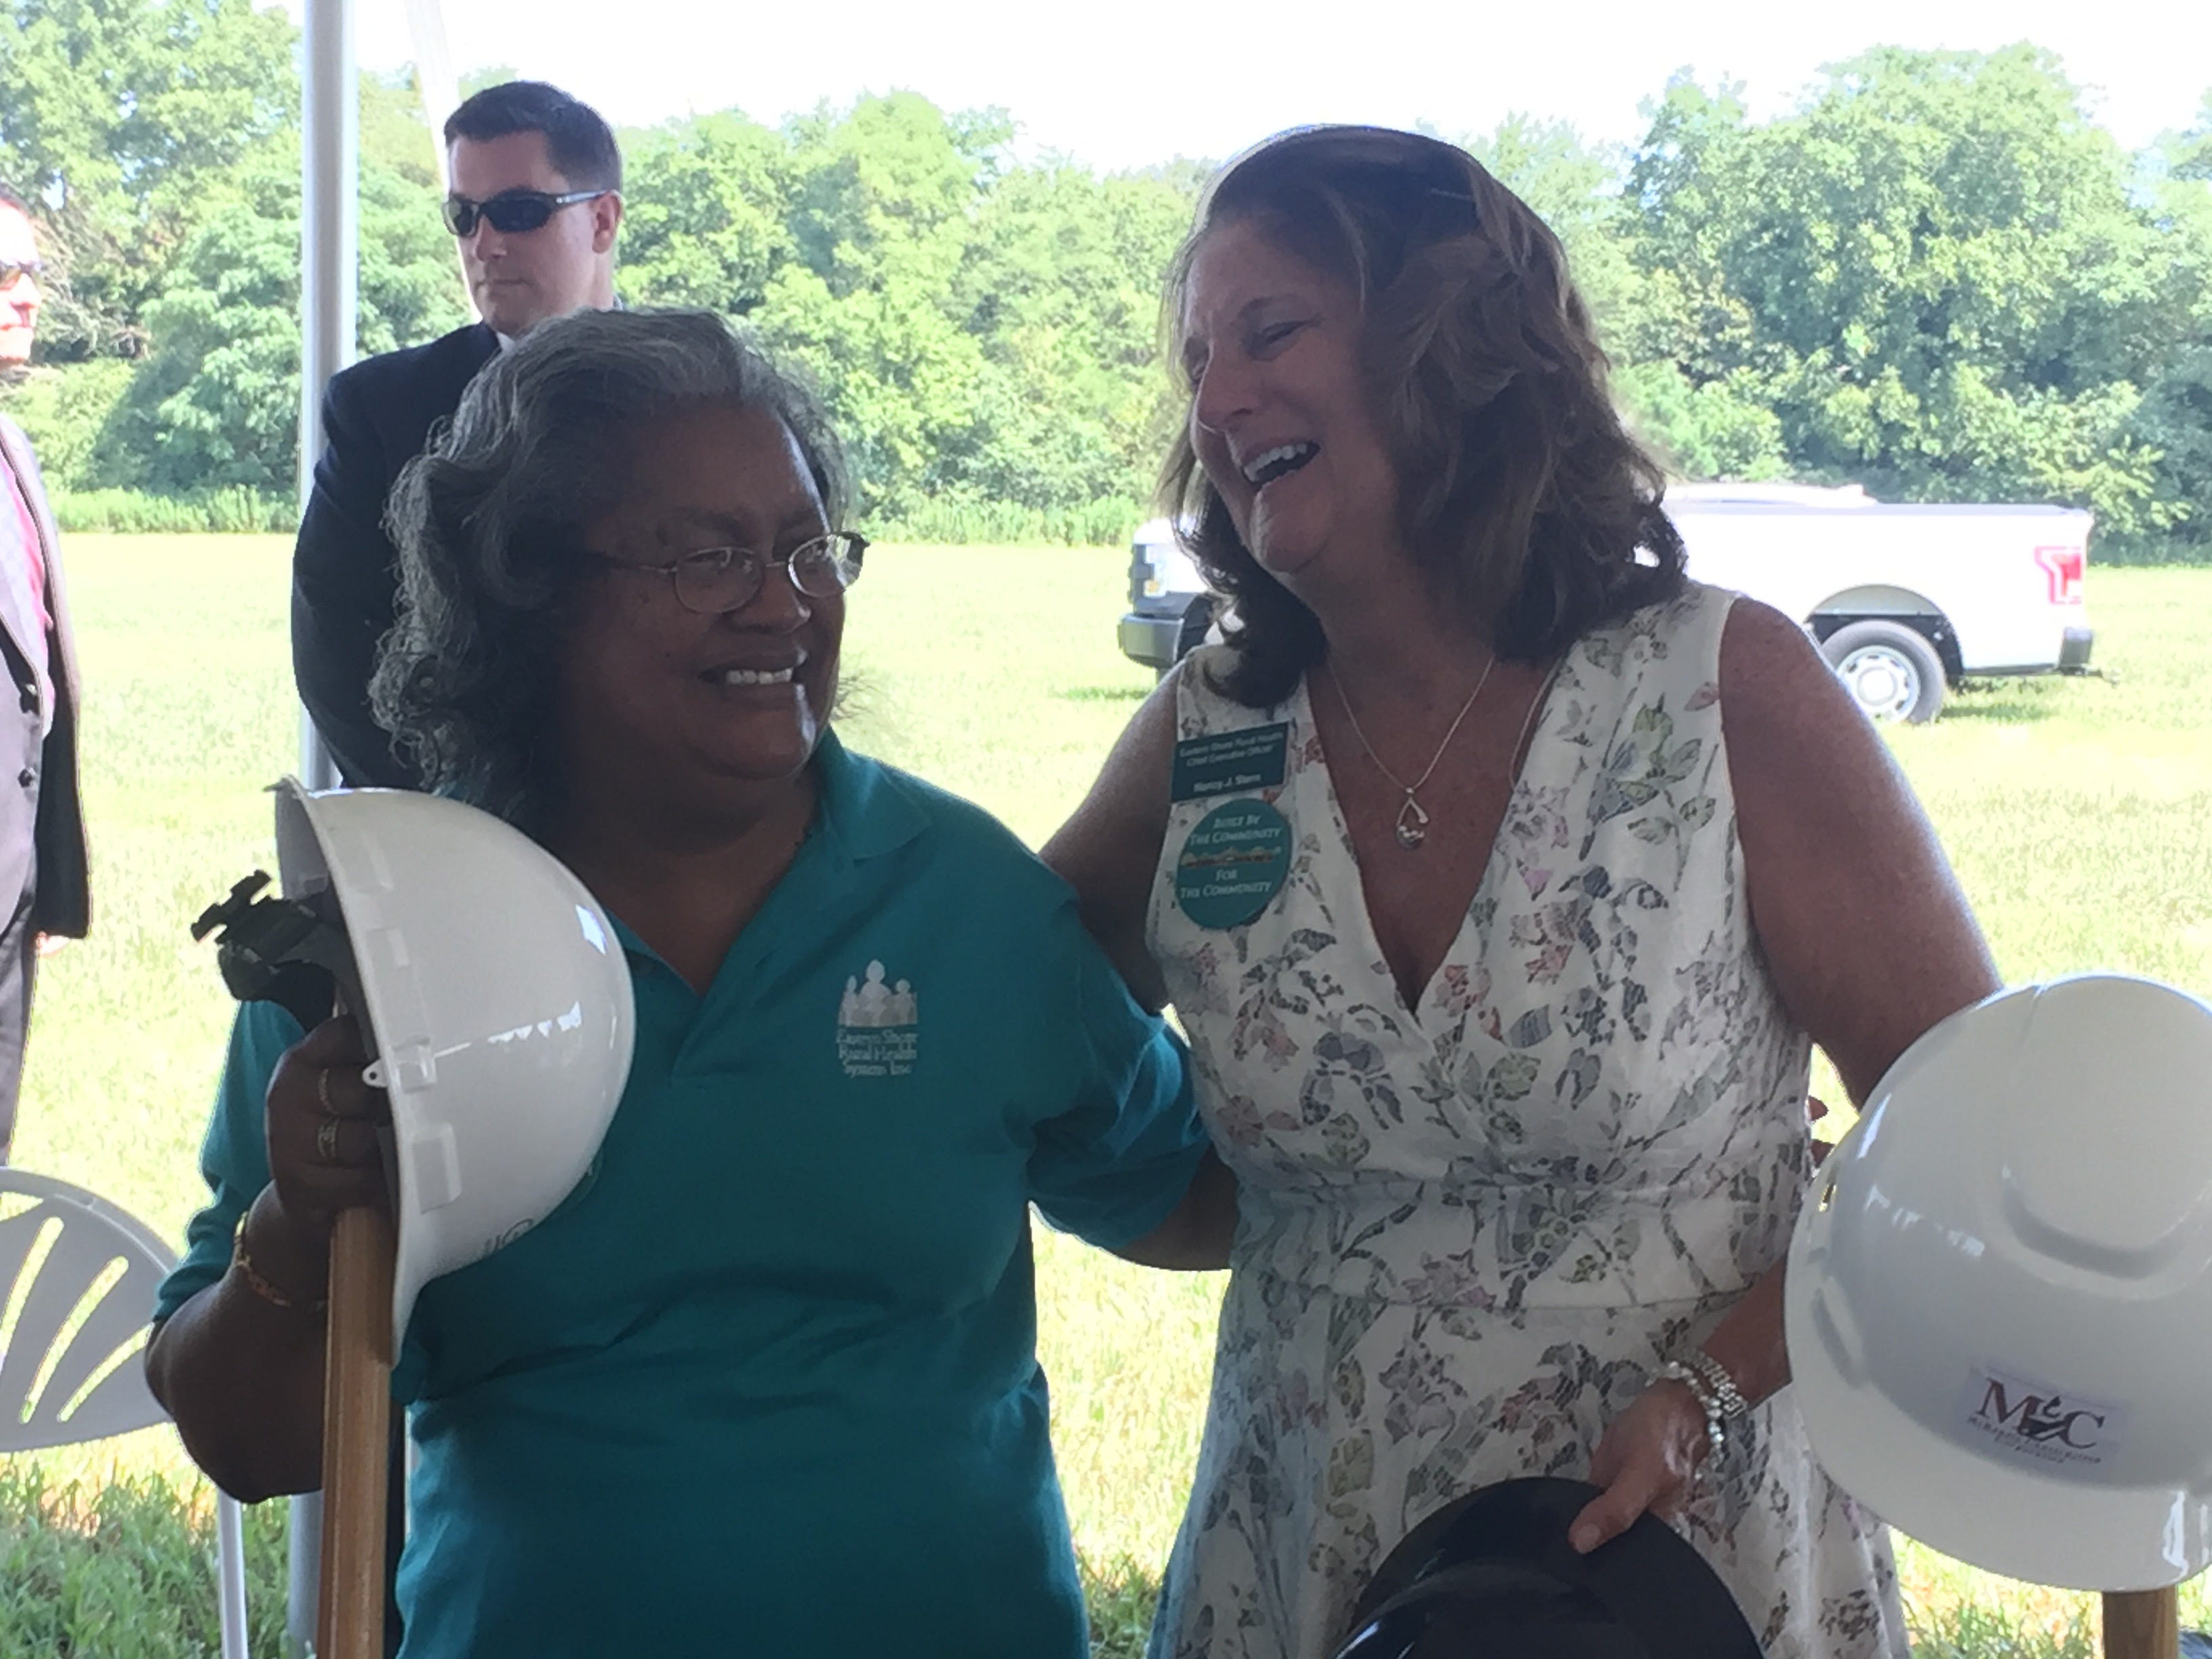 Denise Bland, left, president of the Eastern Shore Rural Health System board of directors, chats with Rural Health CEO Nancy Stern after a groundbreaking ceremony for Eastville Community Health Center in Eastville, VIrginia on Wednesday, Aug. 15, 2018.